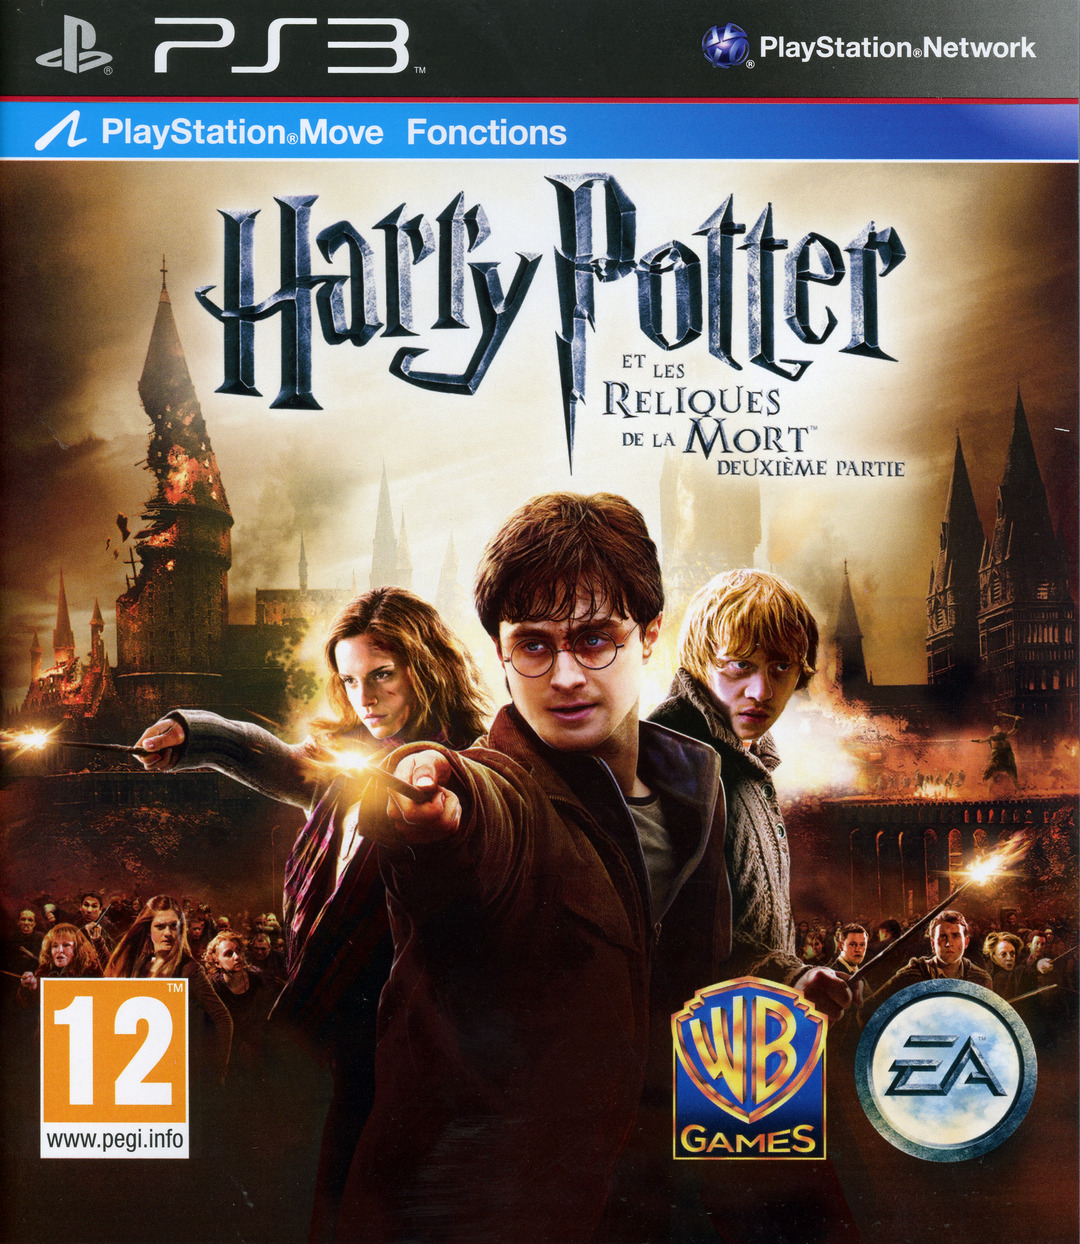 harry potter et les reliques de la mort deuxi me partie sur playstation 3. Black Bedroom Furniture Sets. Home Design Ideas